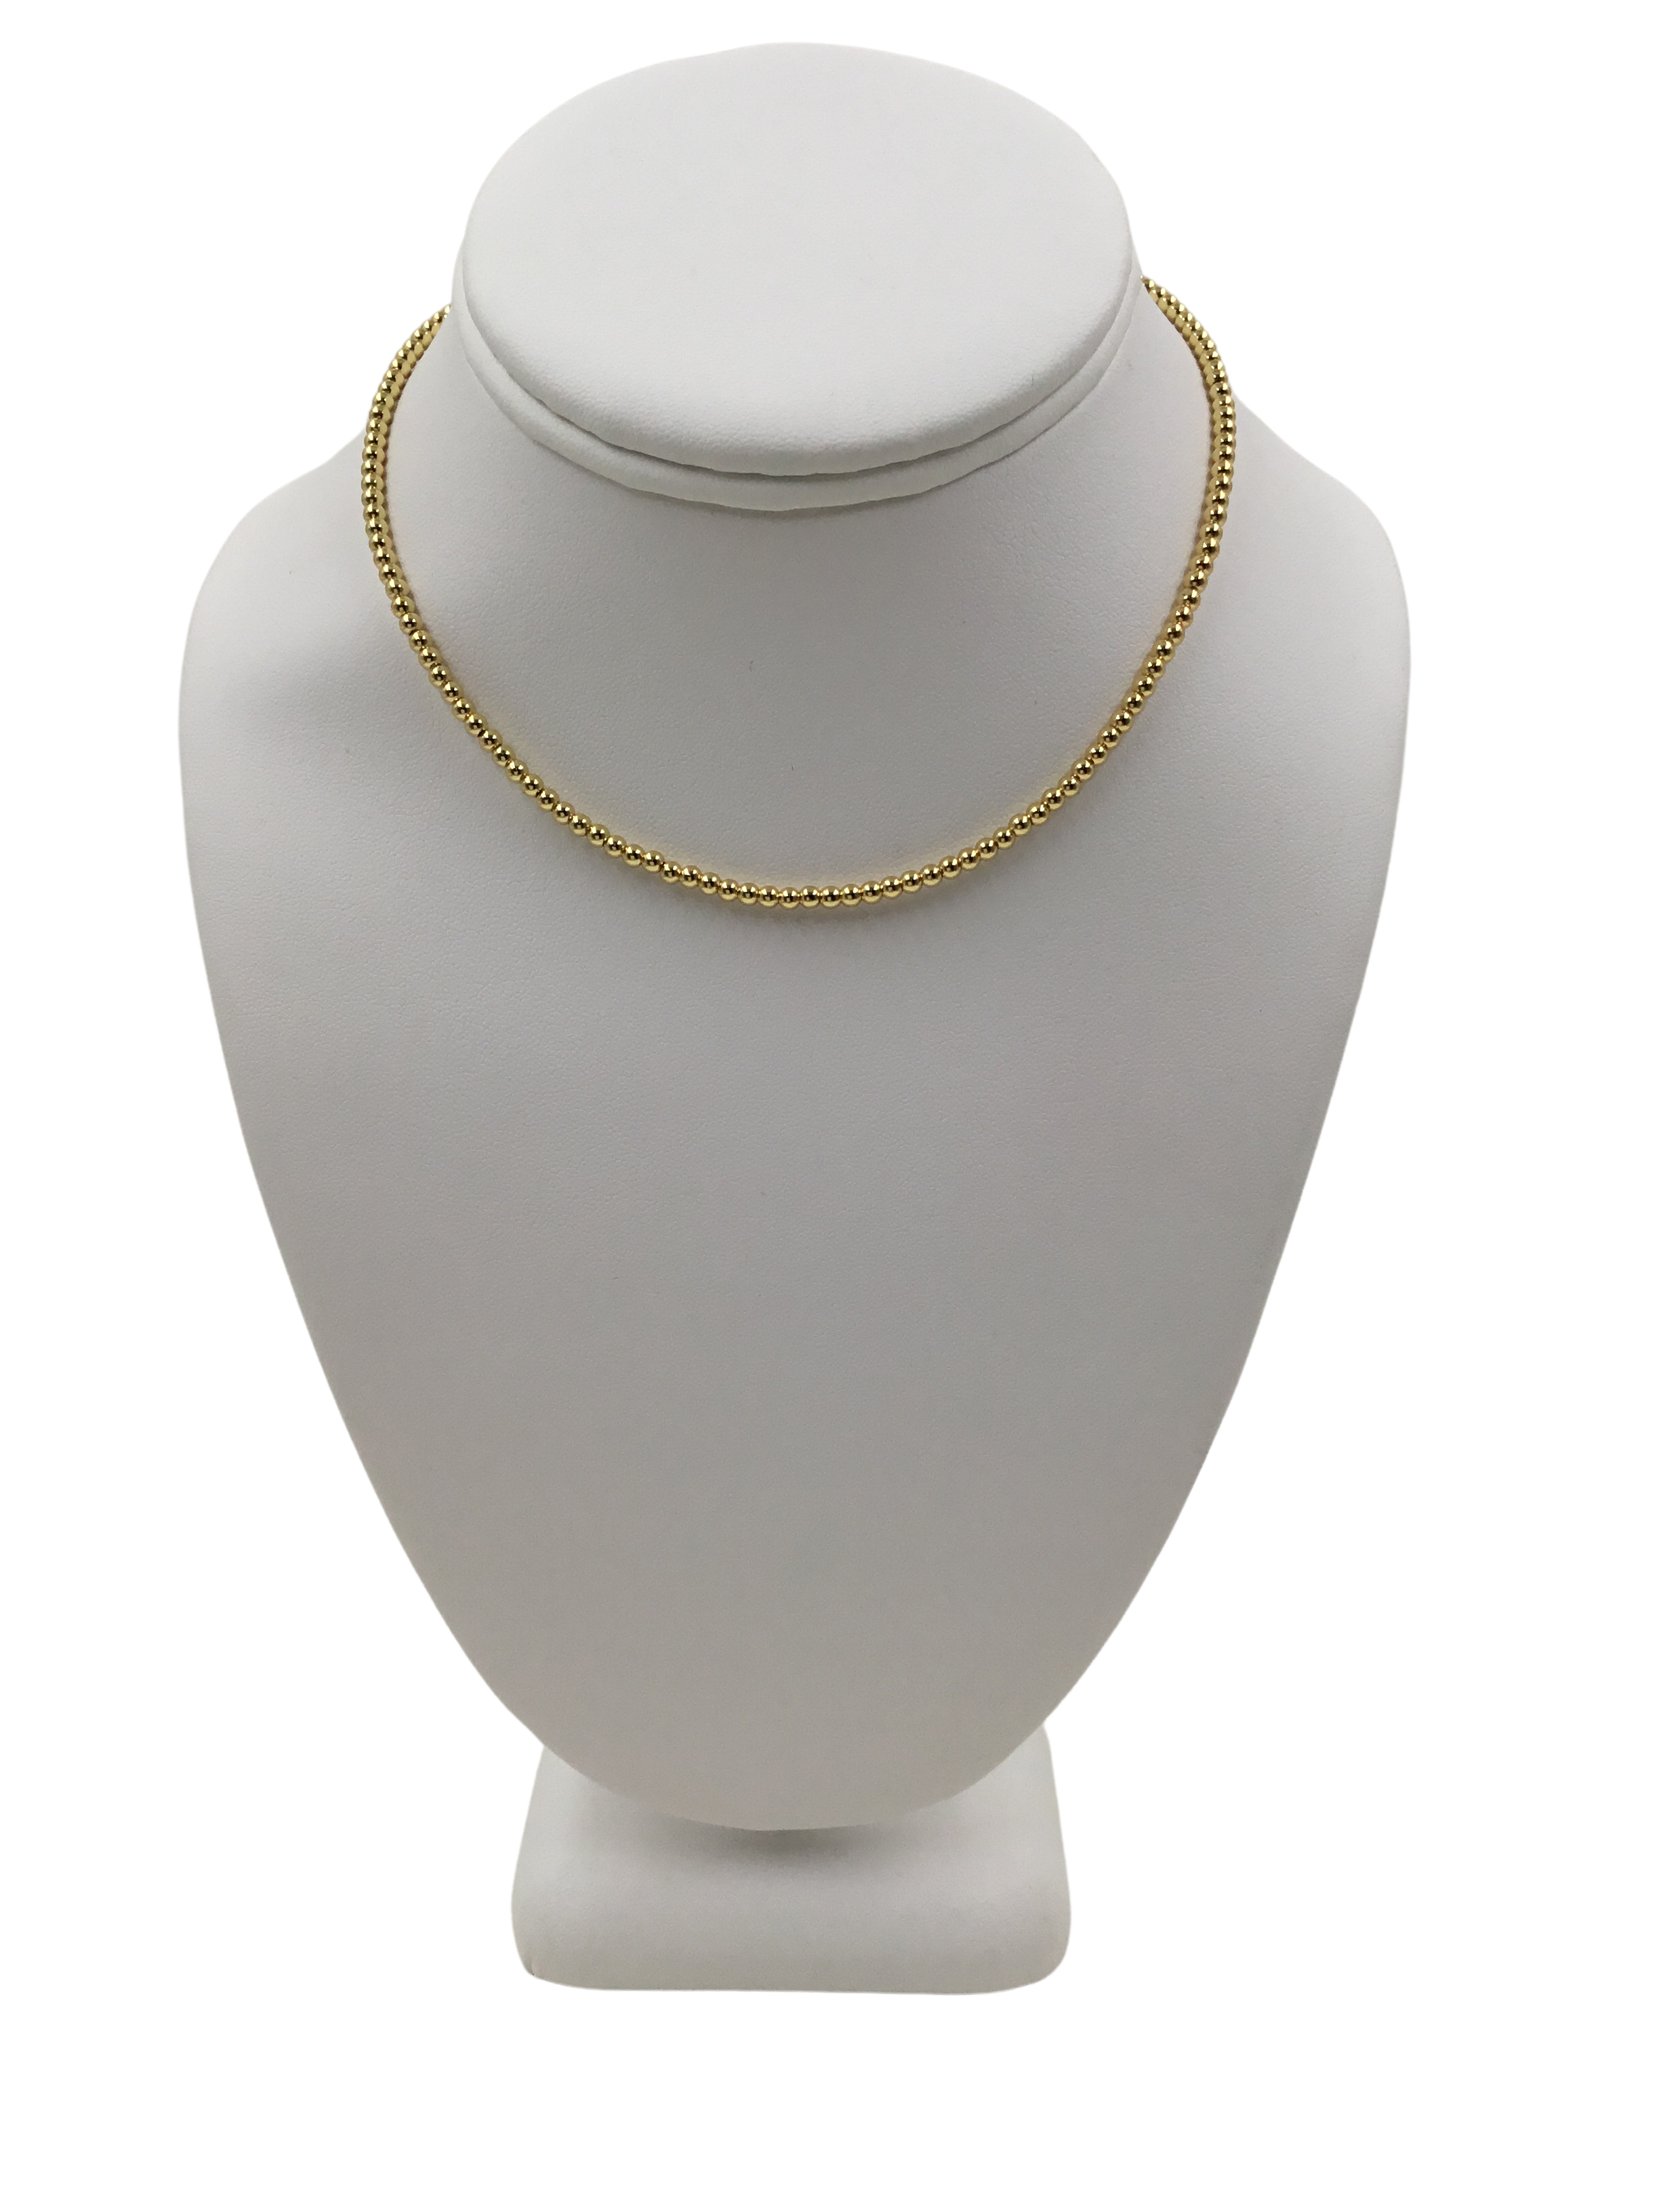 3MM Rhodium Beads Choker Necklace